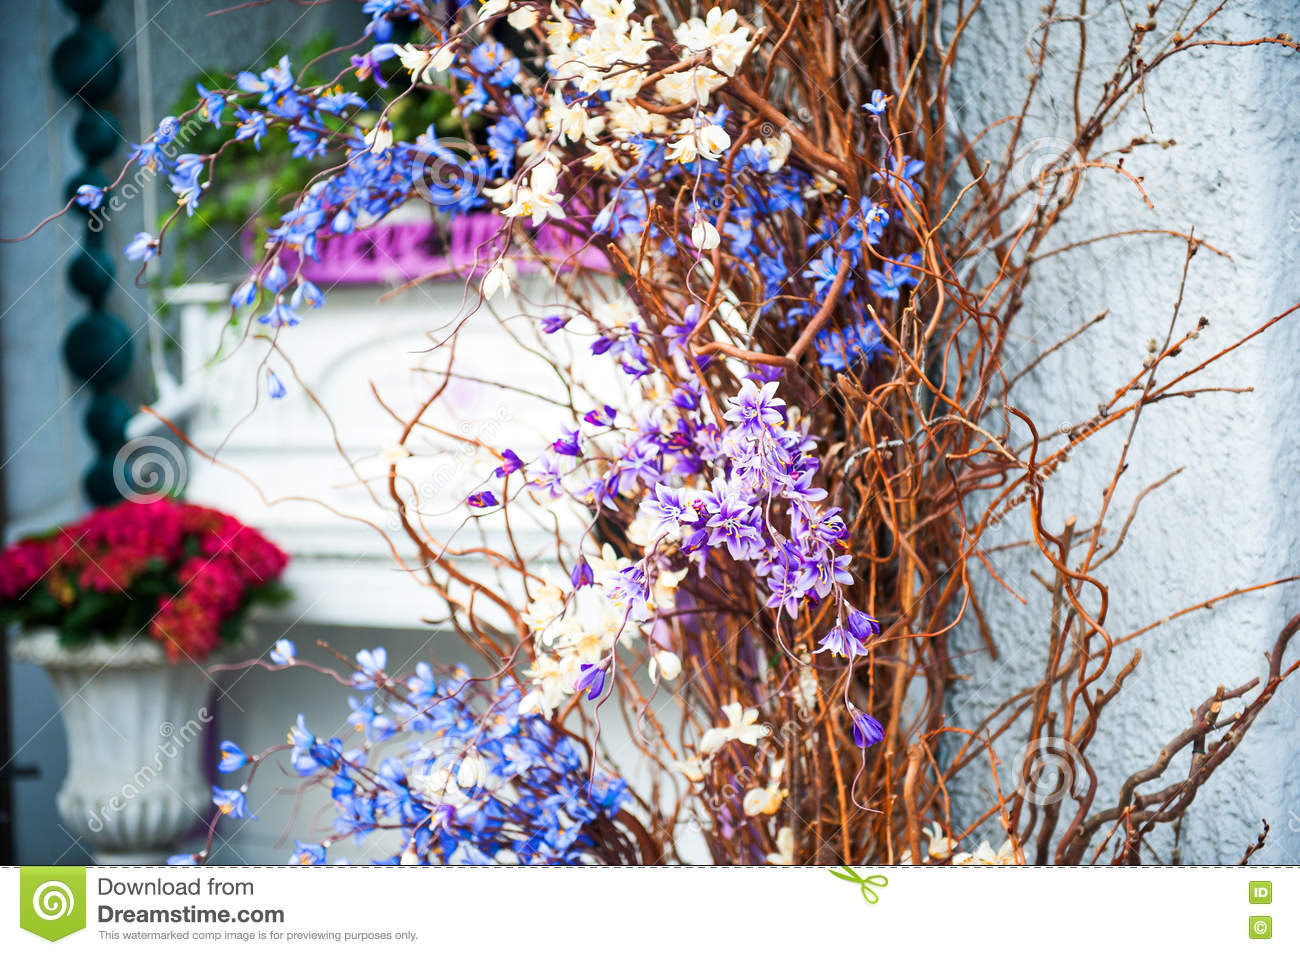 Wedding Decoration Of Blue And Purple Flowers On A Light Turquoise